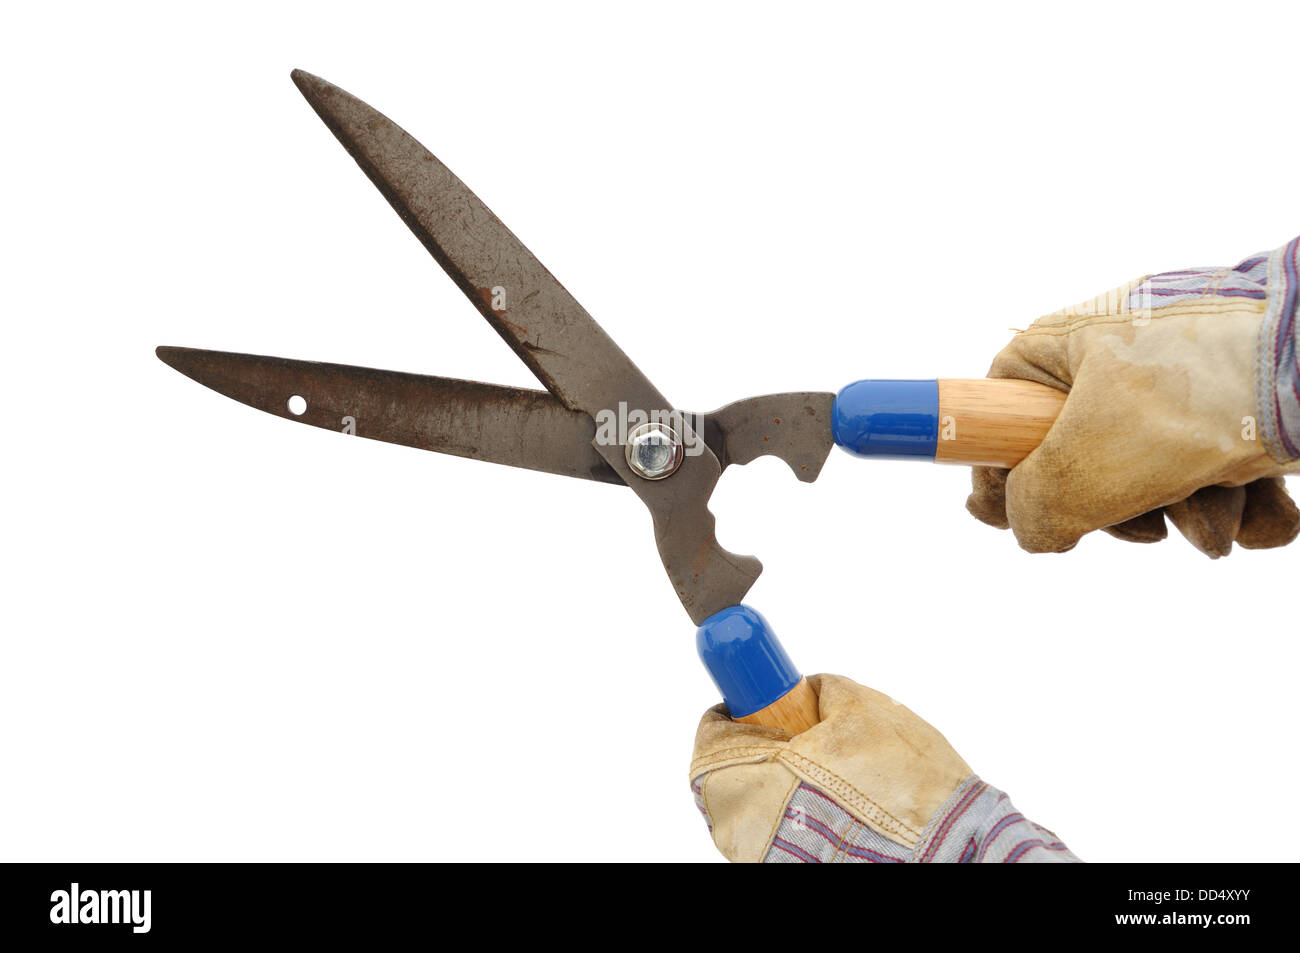 Gardener Holding a Hedge Trimmer Isolated On White - Stock Image